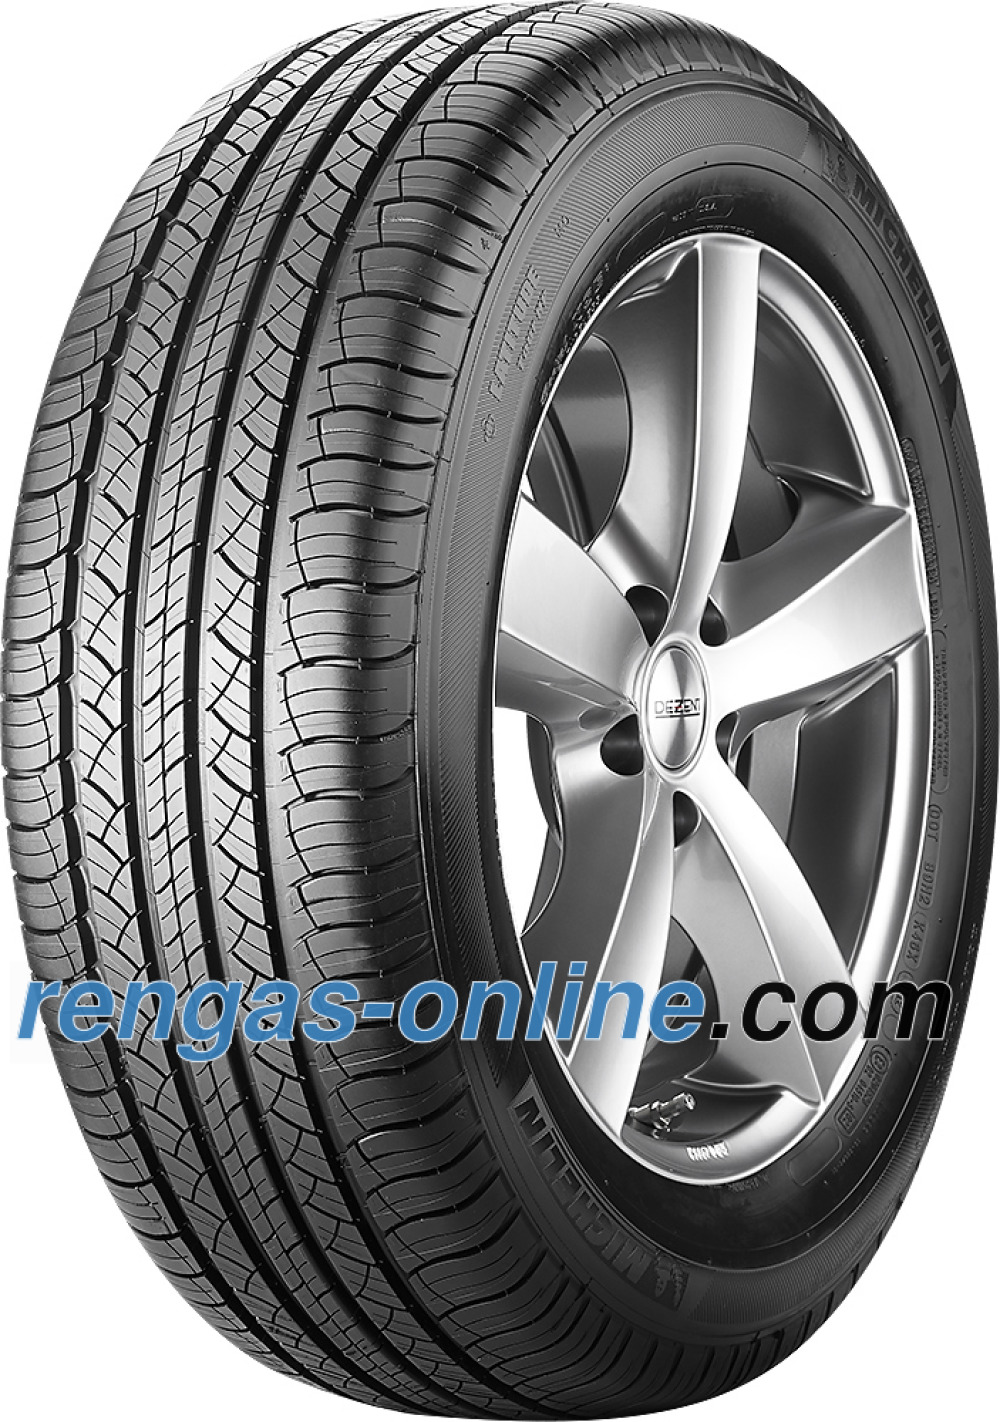 michelin-latitude-tour-hp-25550-r19-107w-xl